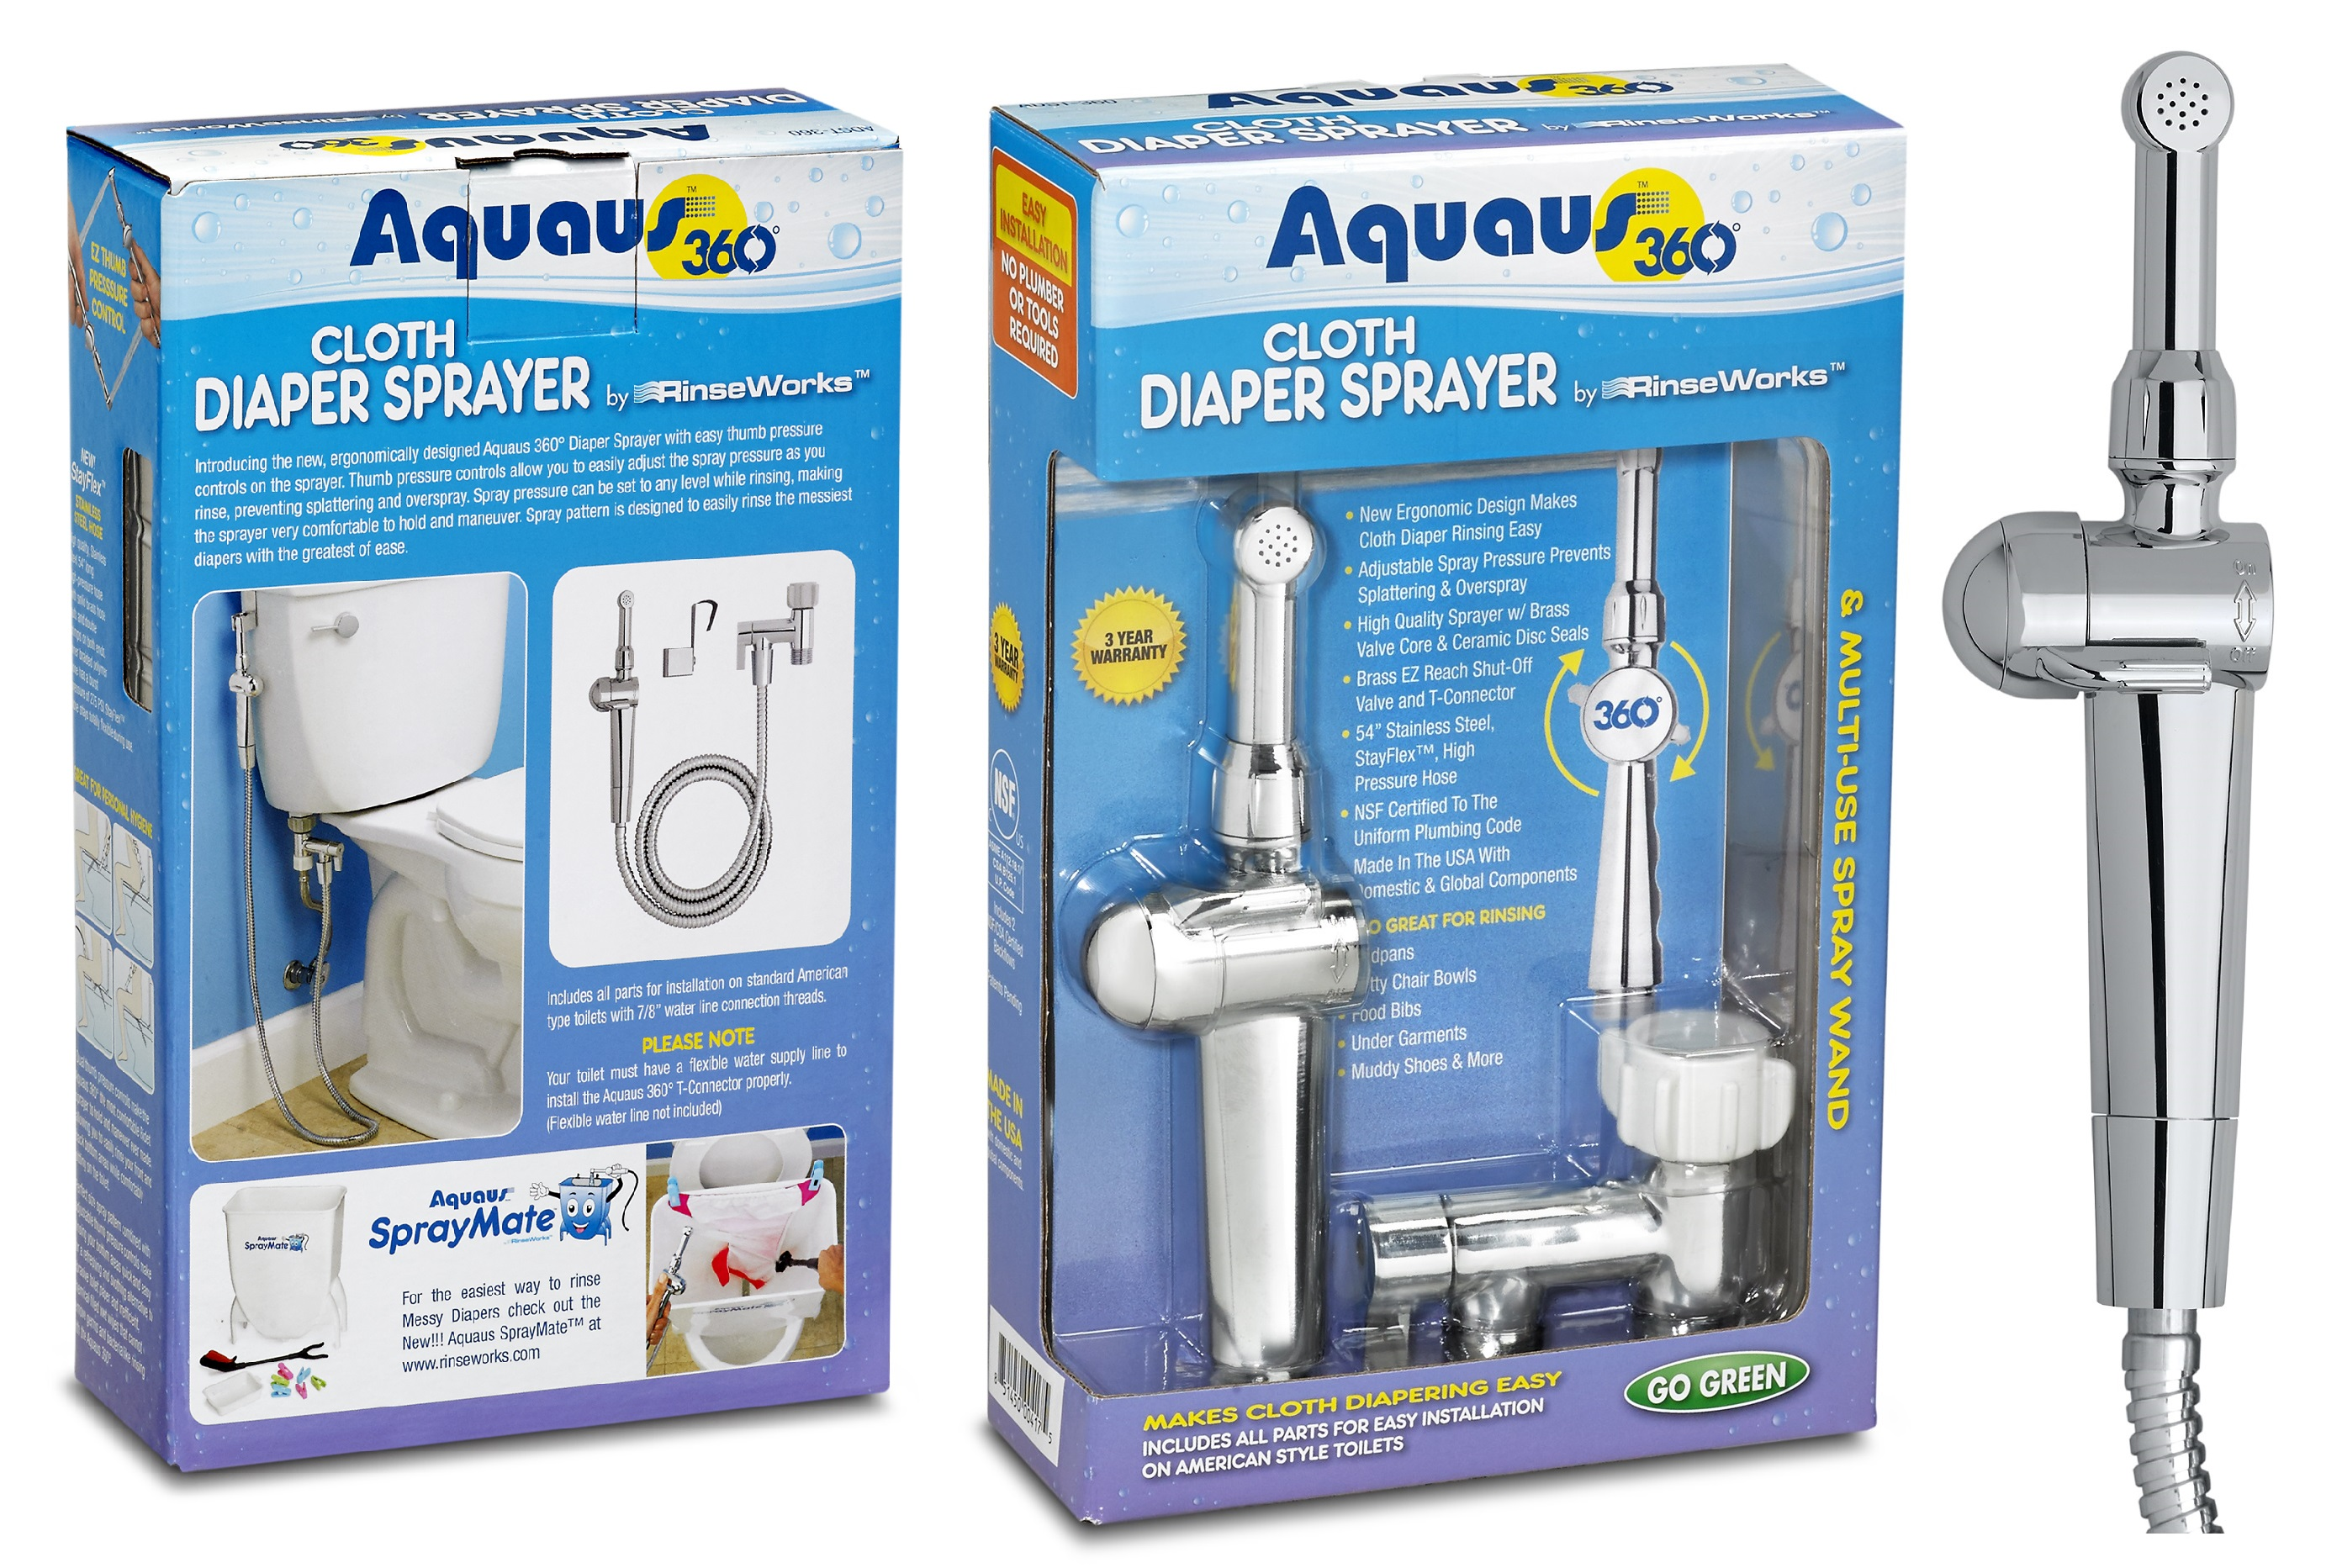 Aquaus 360 diaper sprayer Box